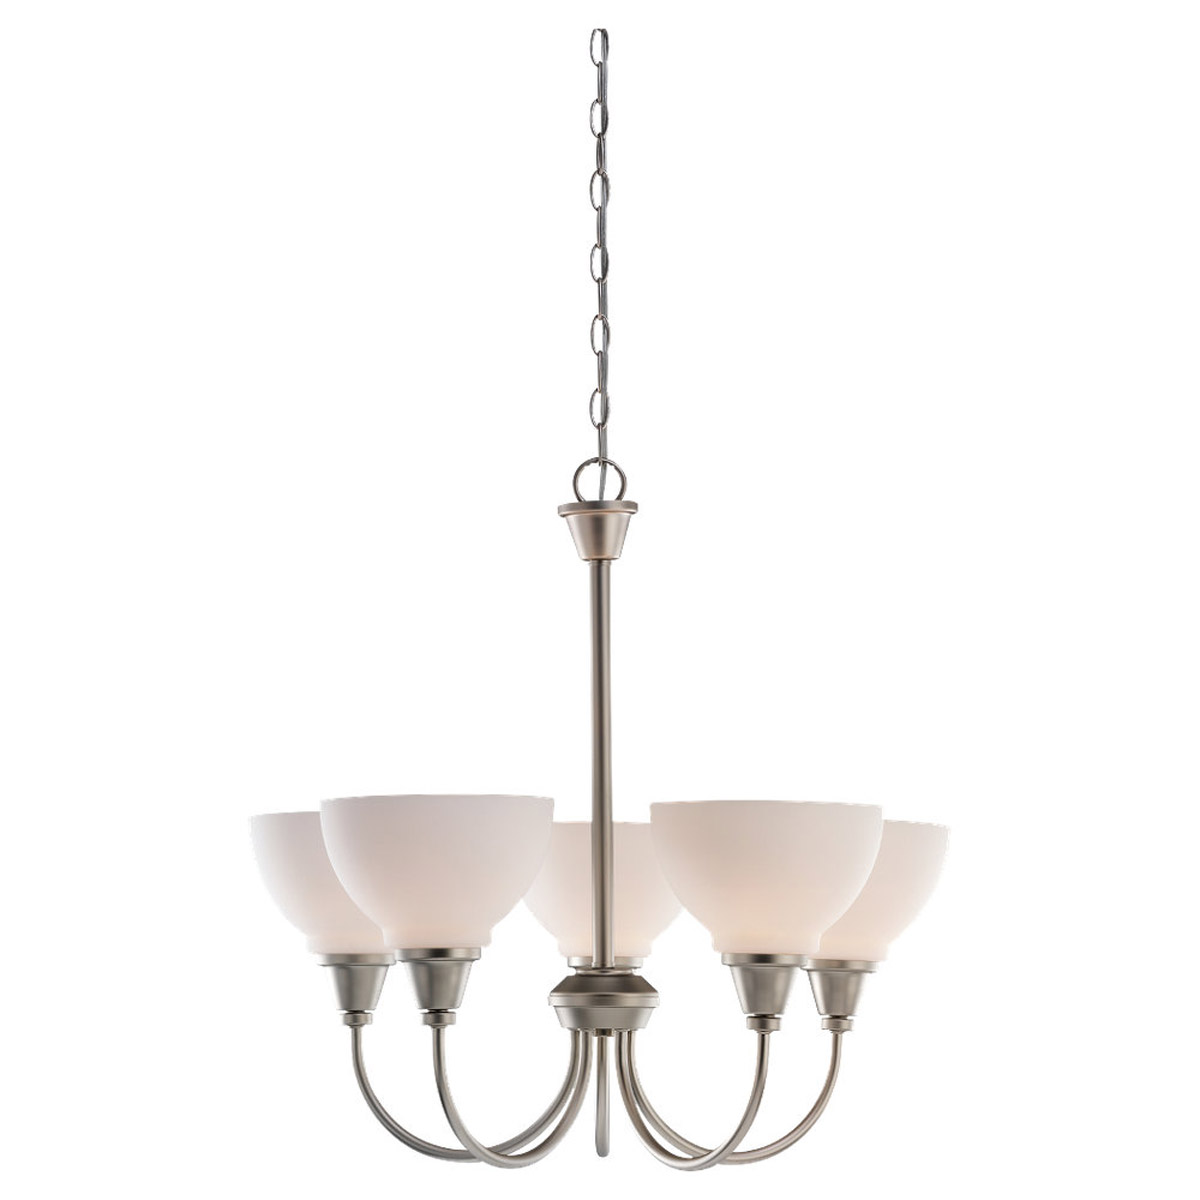 Sea Gull Lighting Sydney 5 Light Chandelier in Golden Pewter 31746-853 photo